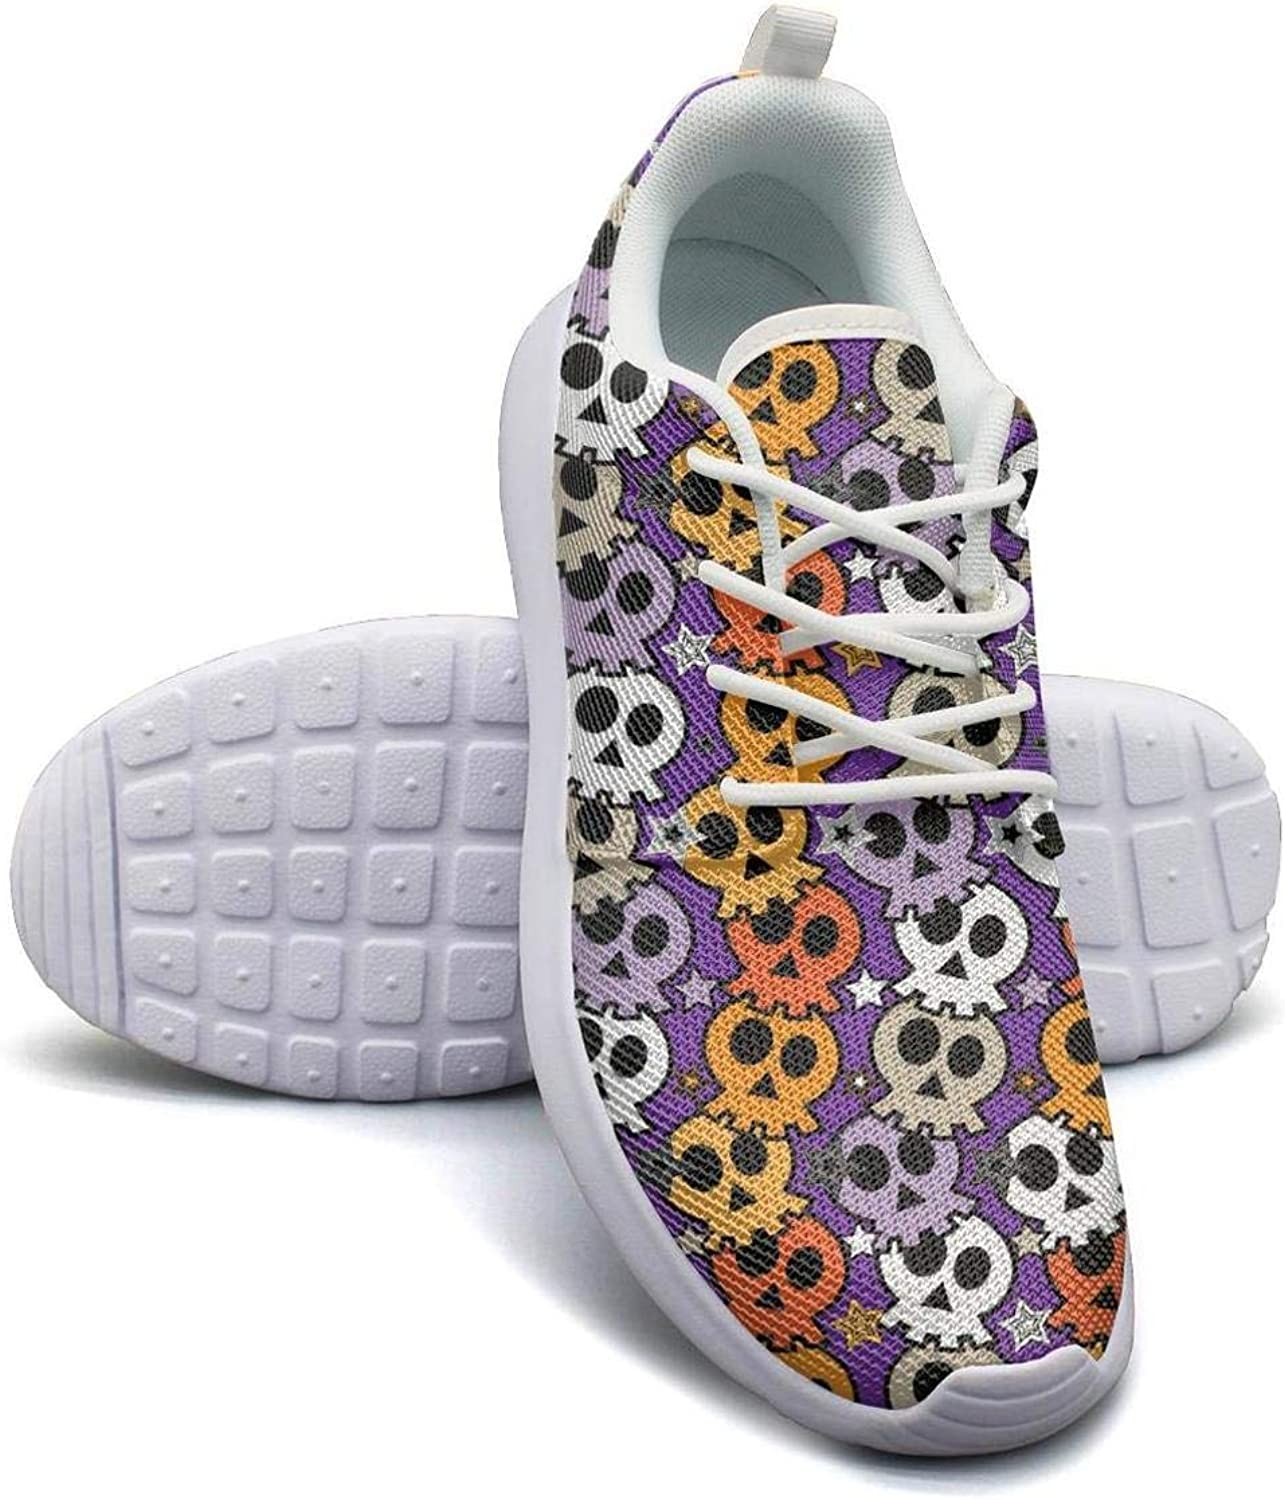 Cheerful Suger Skull Floral Casual shoes for Women Spring Wear-Resistant Mesh Lace-Up Running shoes